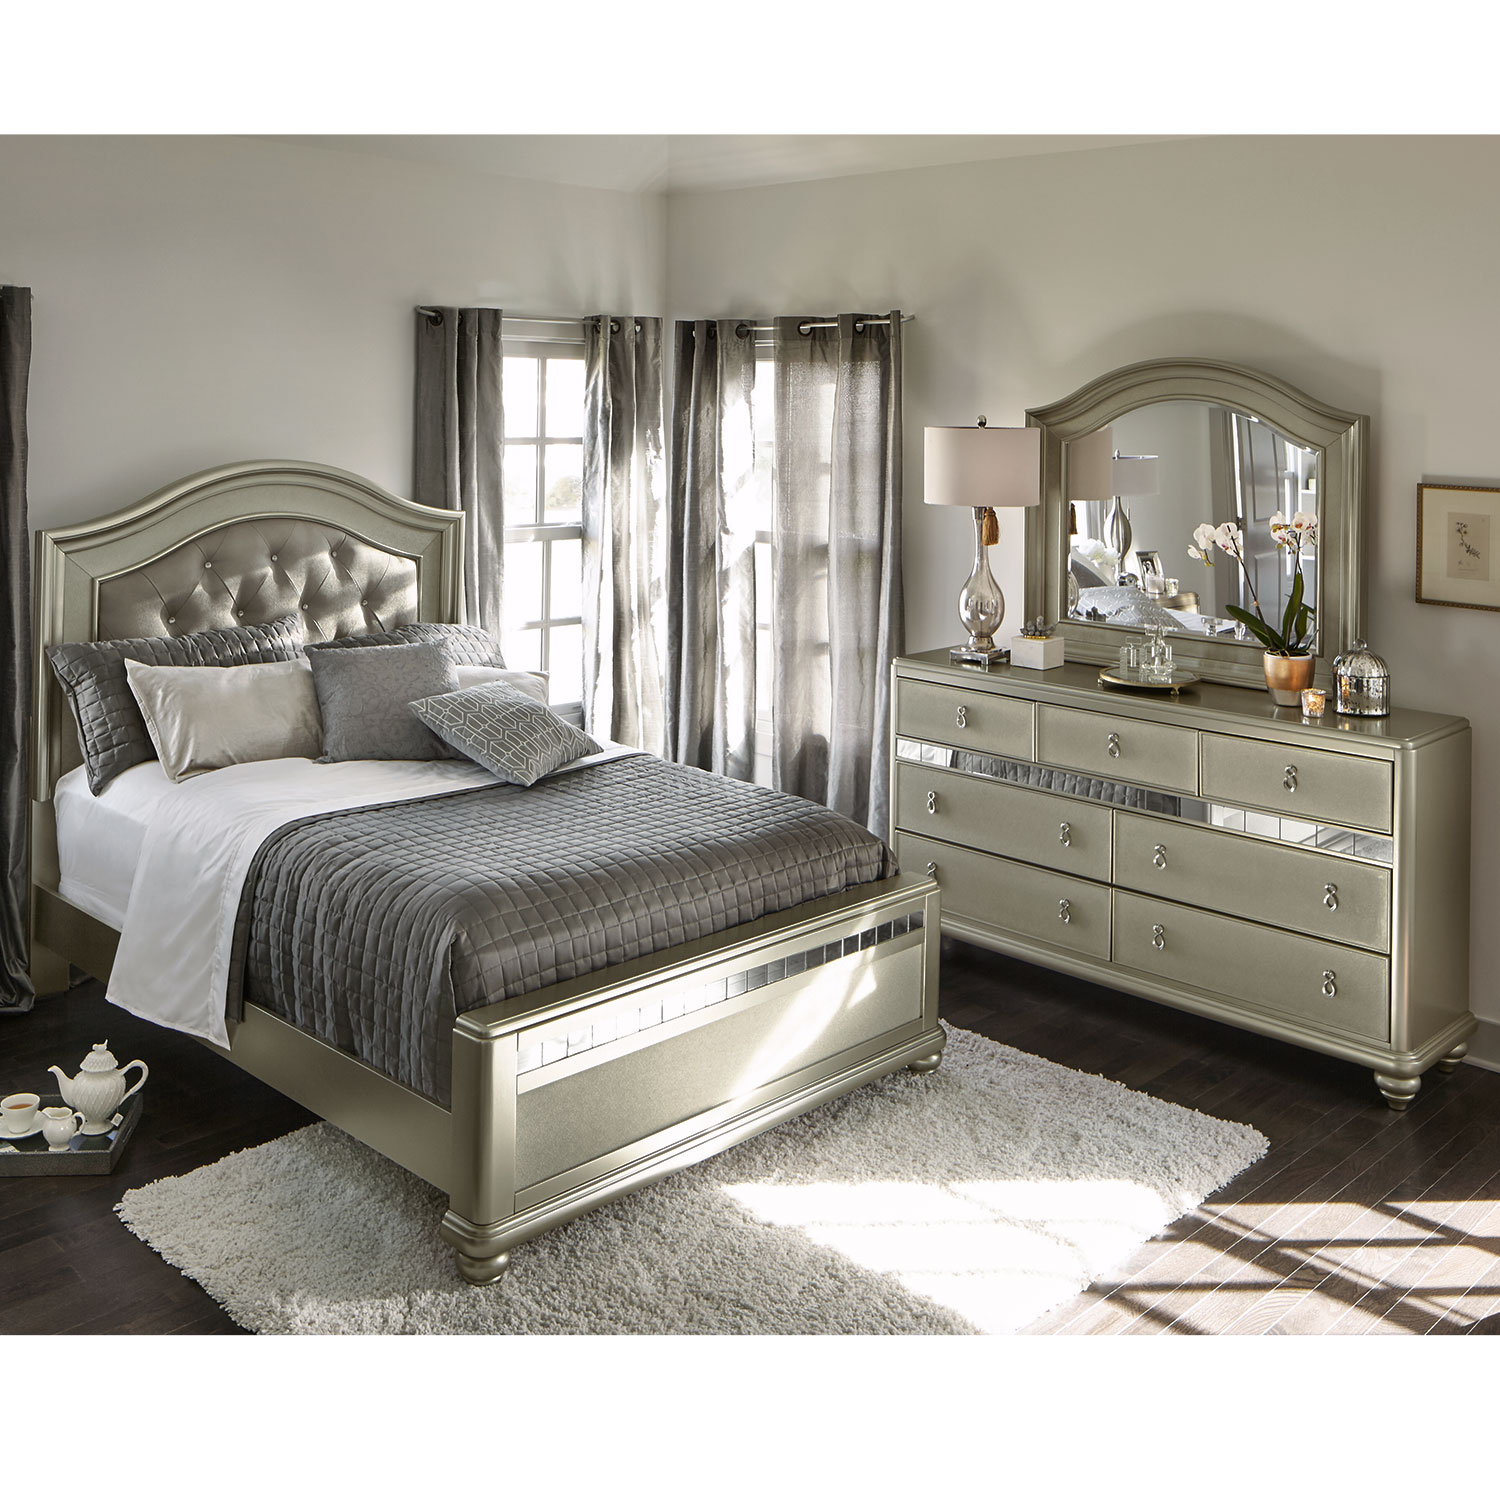 king 5 piece bedroom set platinum american signature furniture